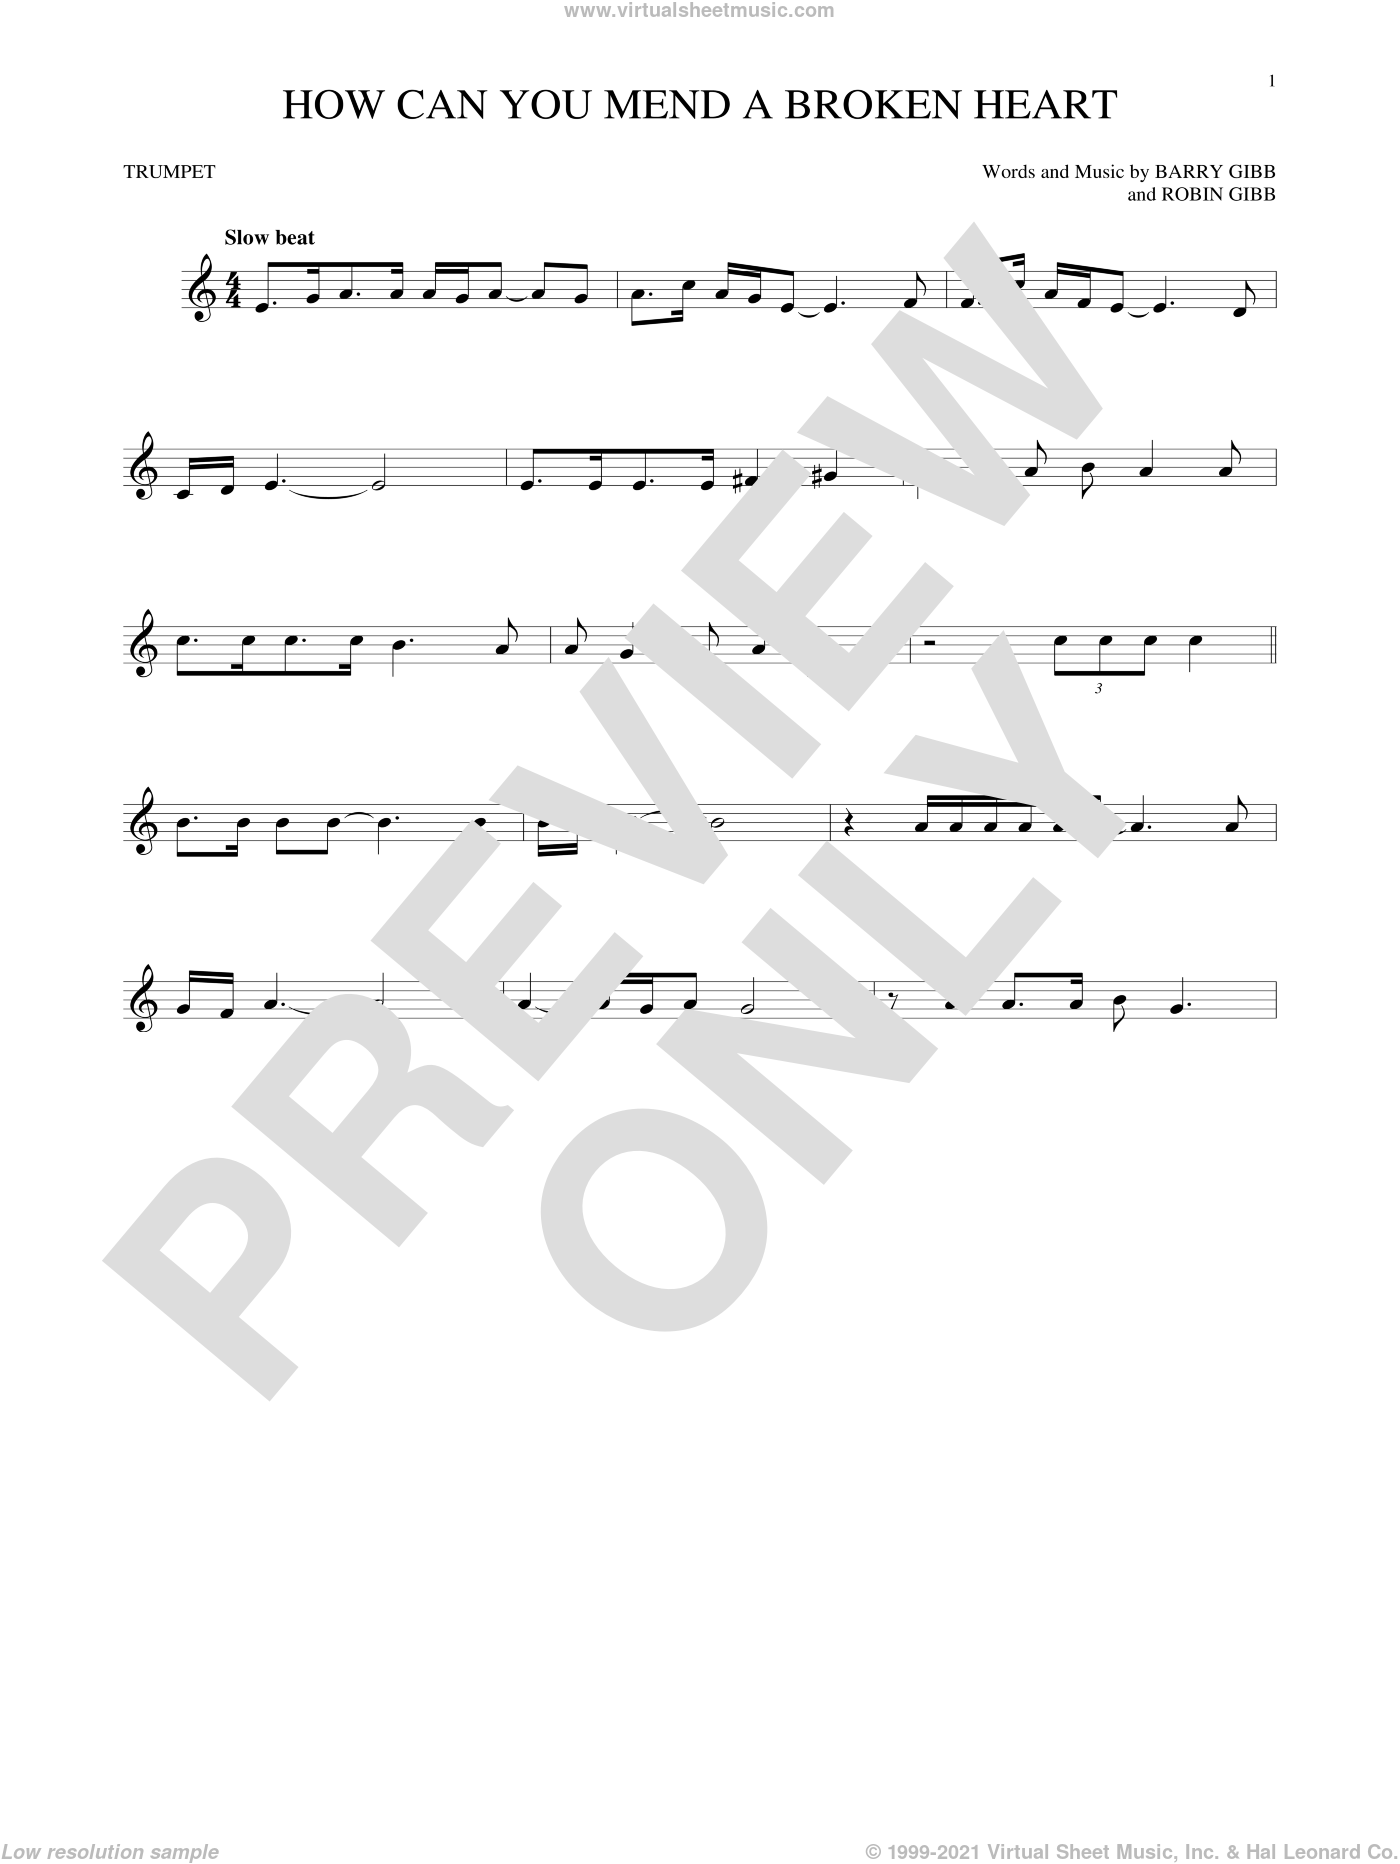 How Can You Mend A Broken Heart sheet music for trumpet solo by Robin Gibb